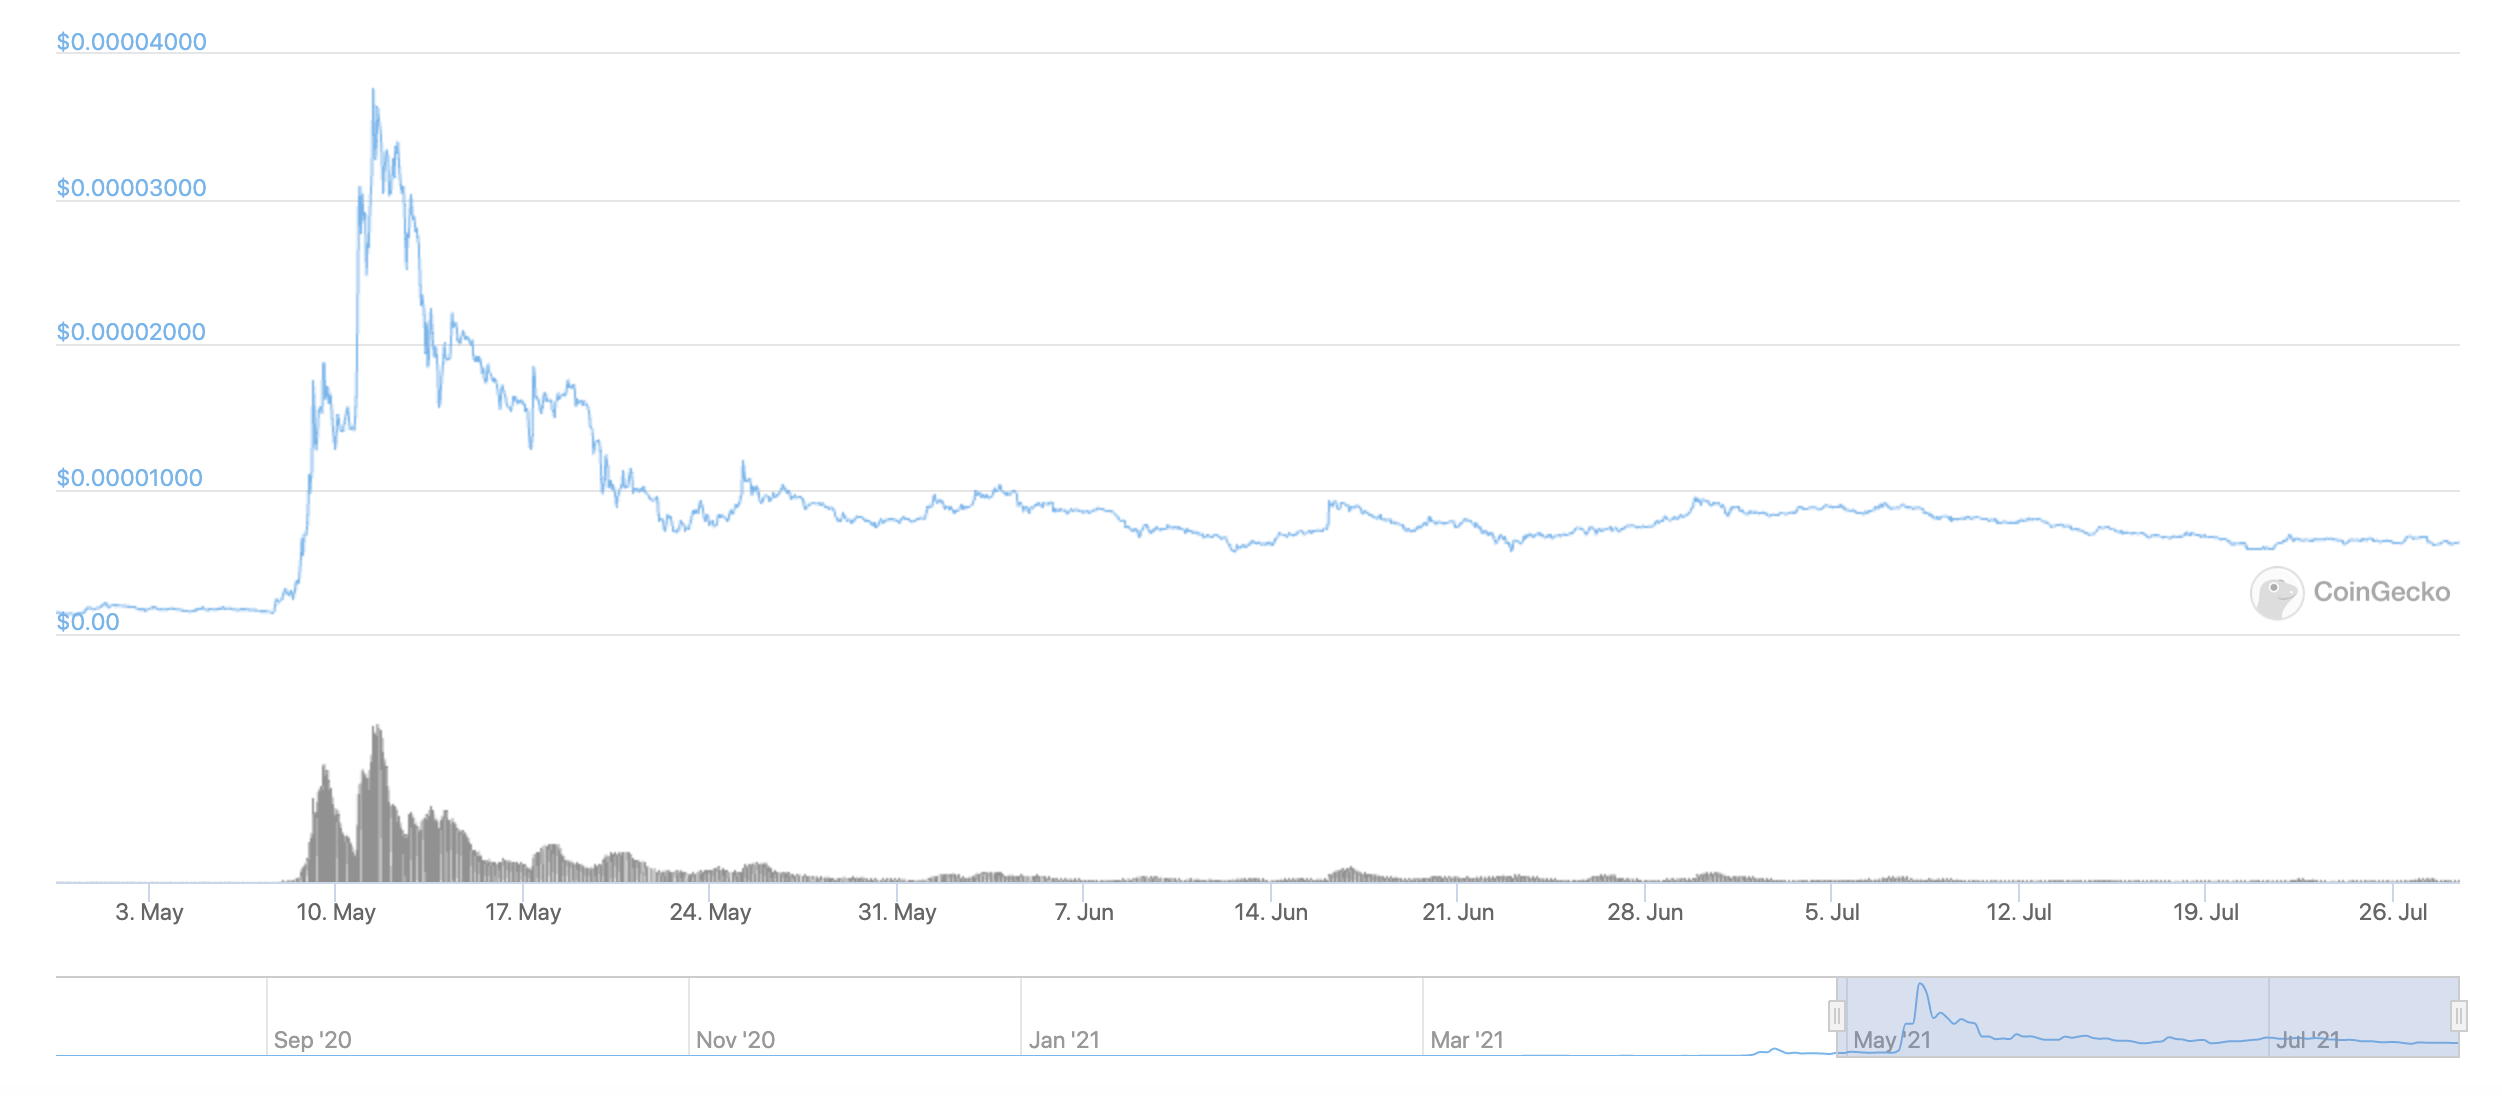 The 90-day price chart shows Shiba Inu coin dropping and then continuing to slide.